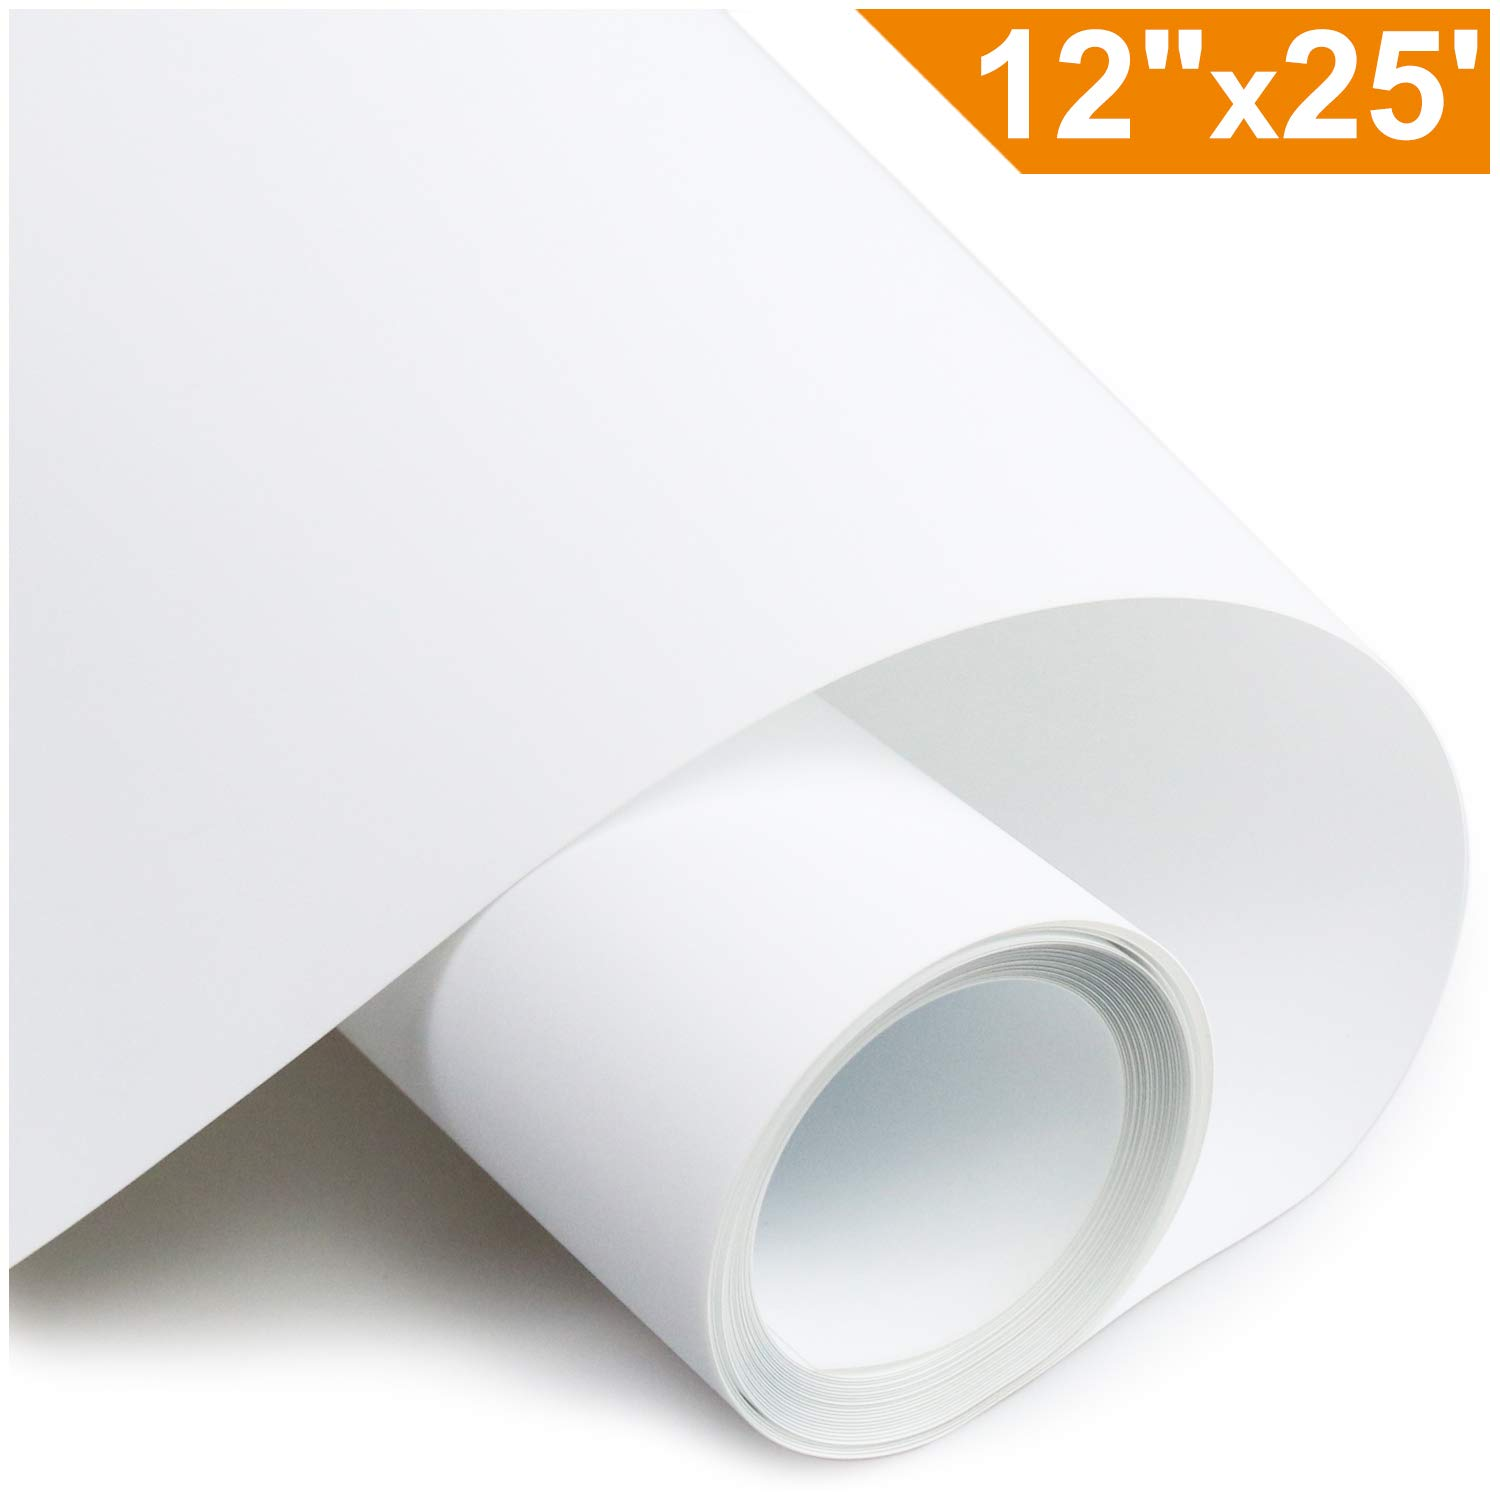 Heat Transfer Vinyl HTV for T-Shirts 12Inches by 25 Feet Rolls(White) AHIKY